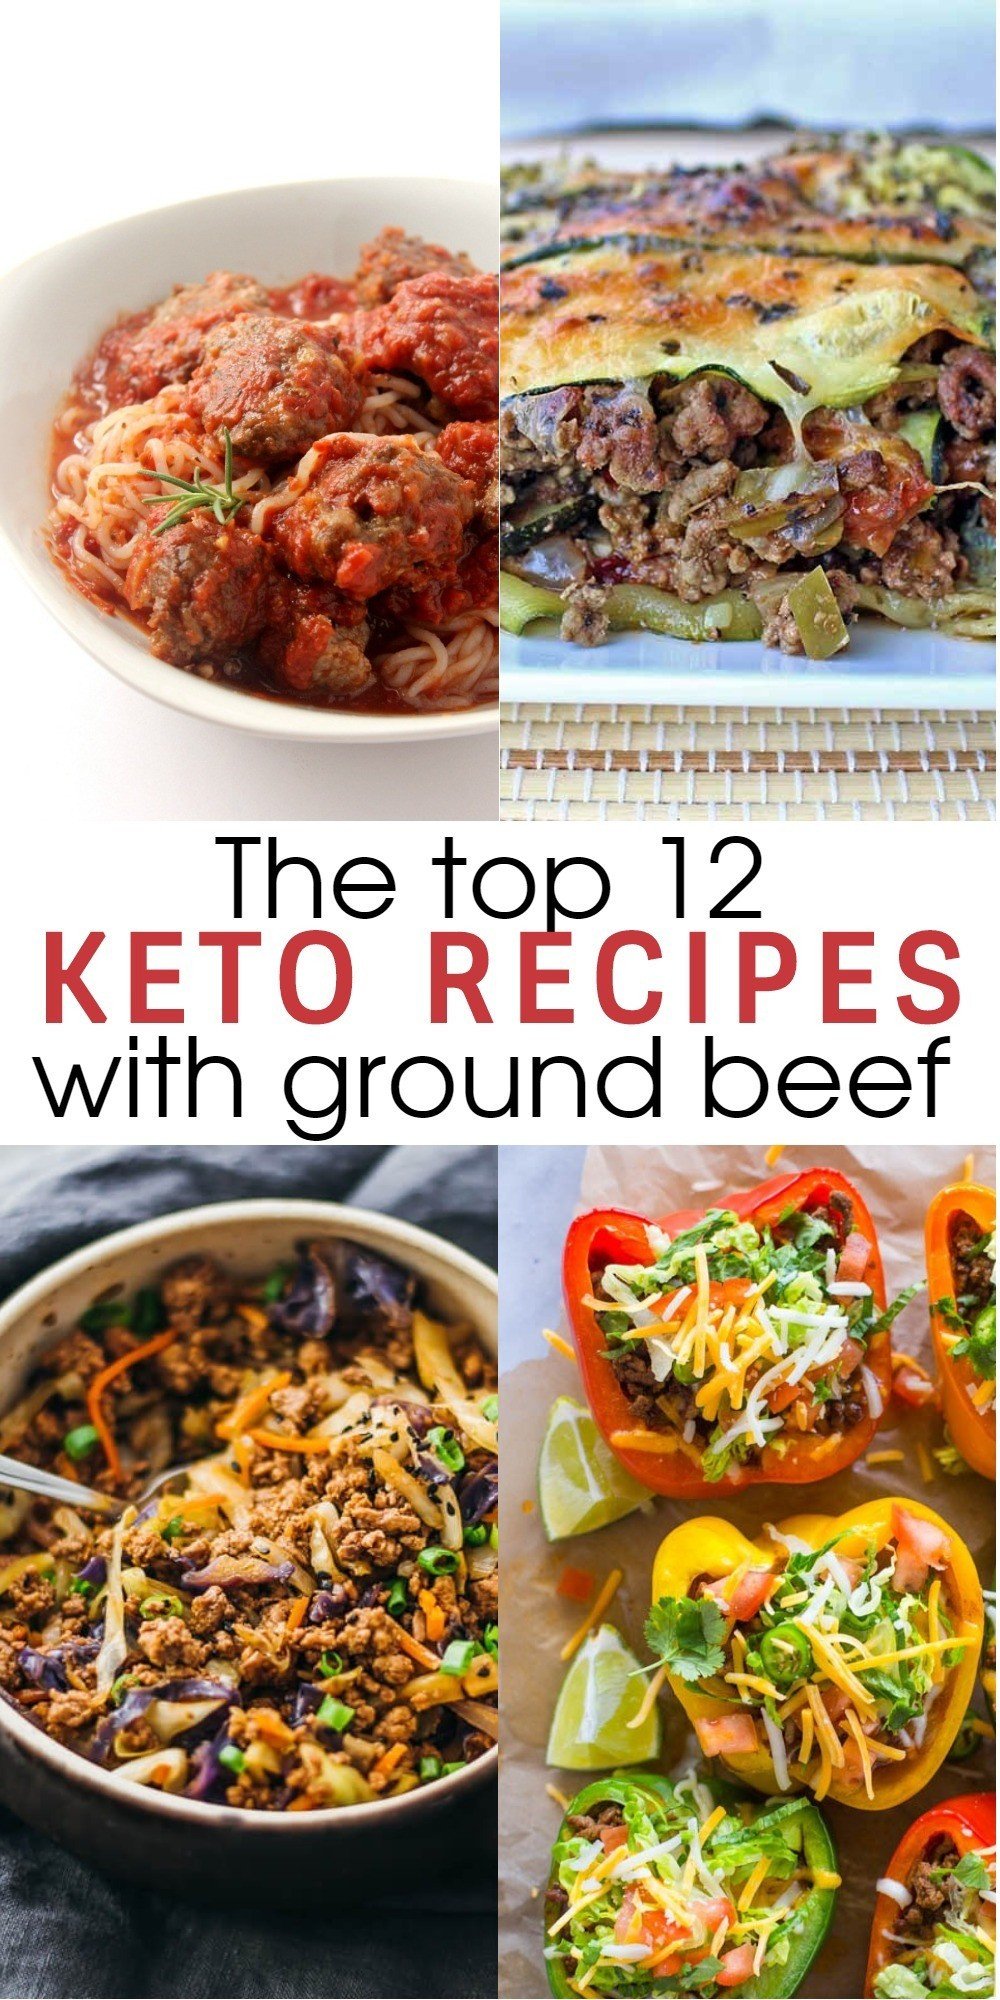 Ground Beef Ideas  12 Flavorful and Easy Keto Recipes With Ground Beef To Try